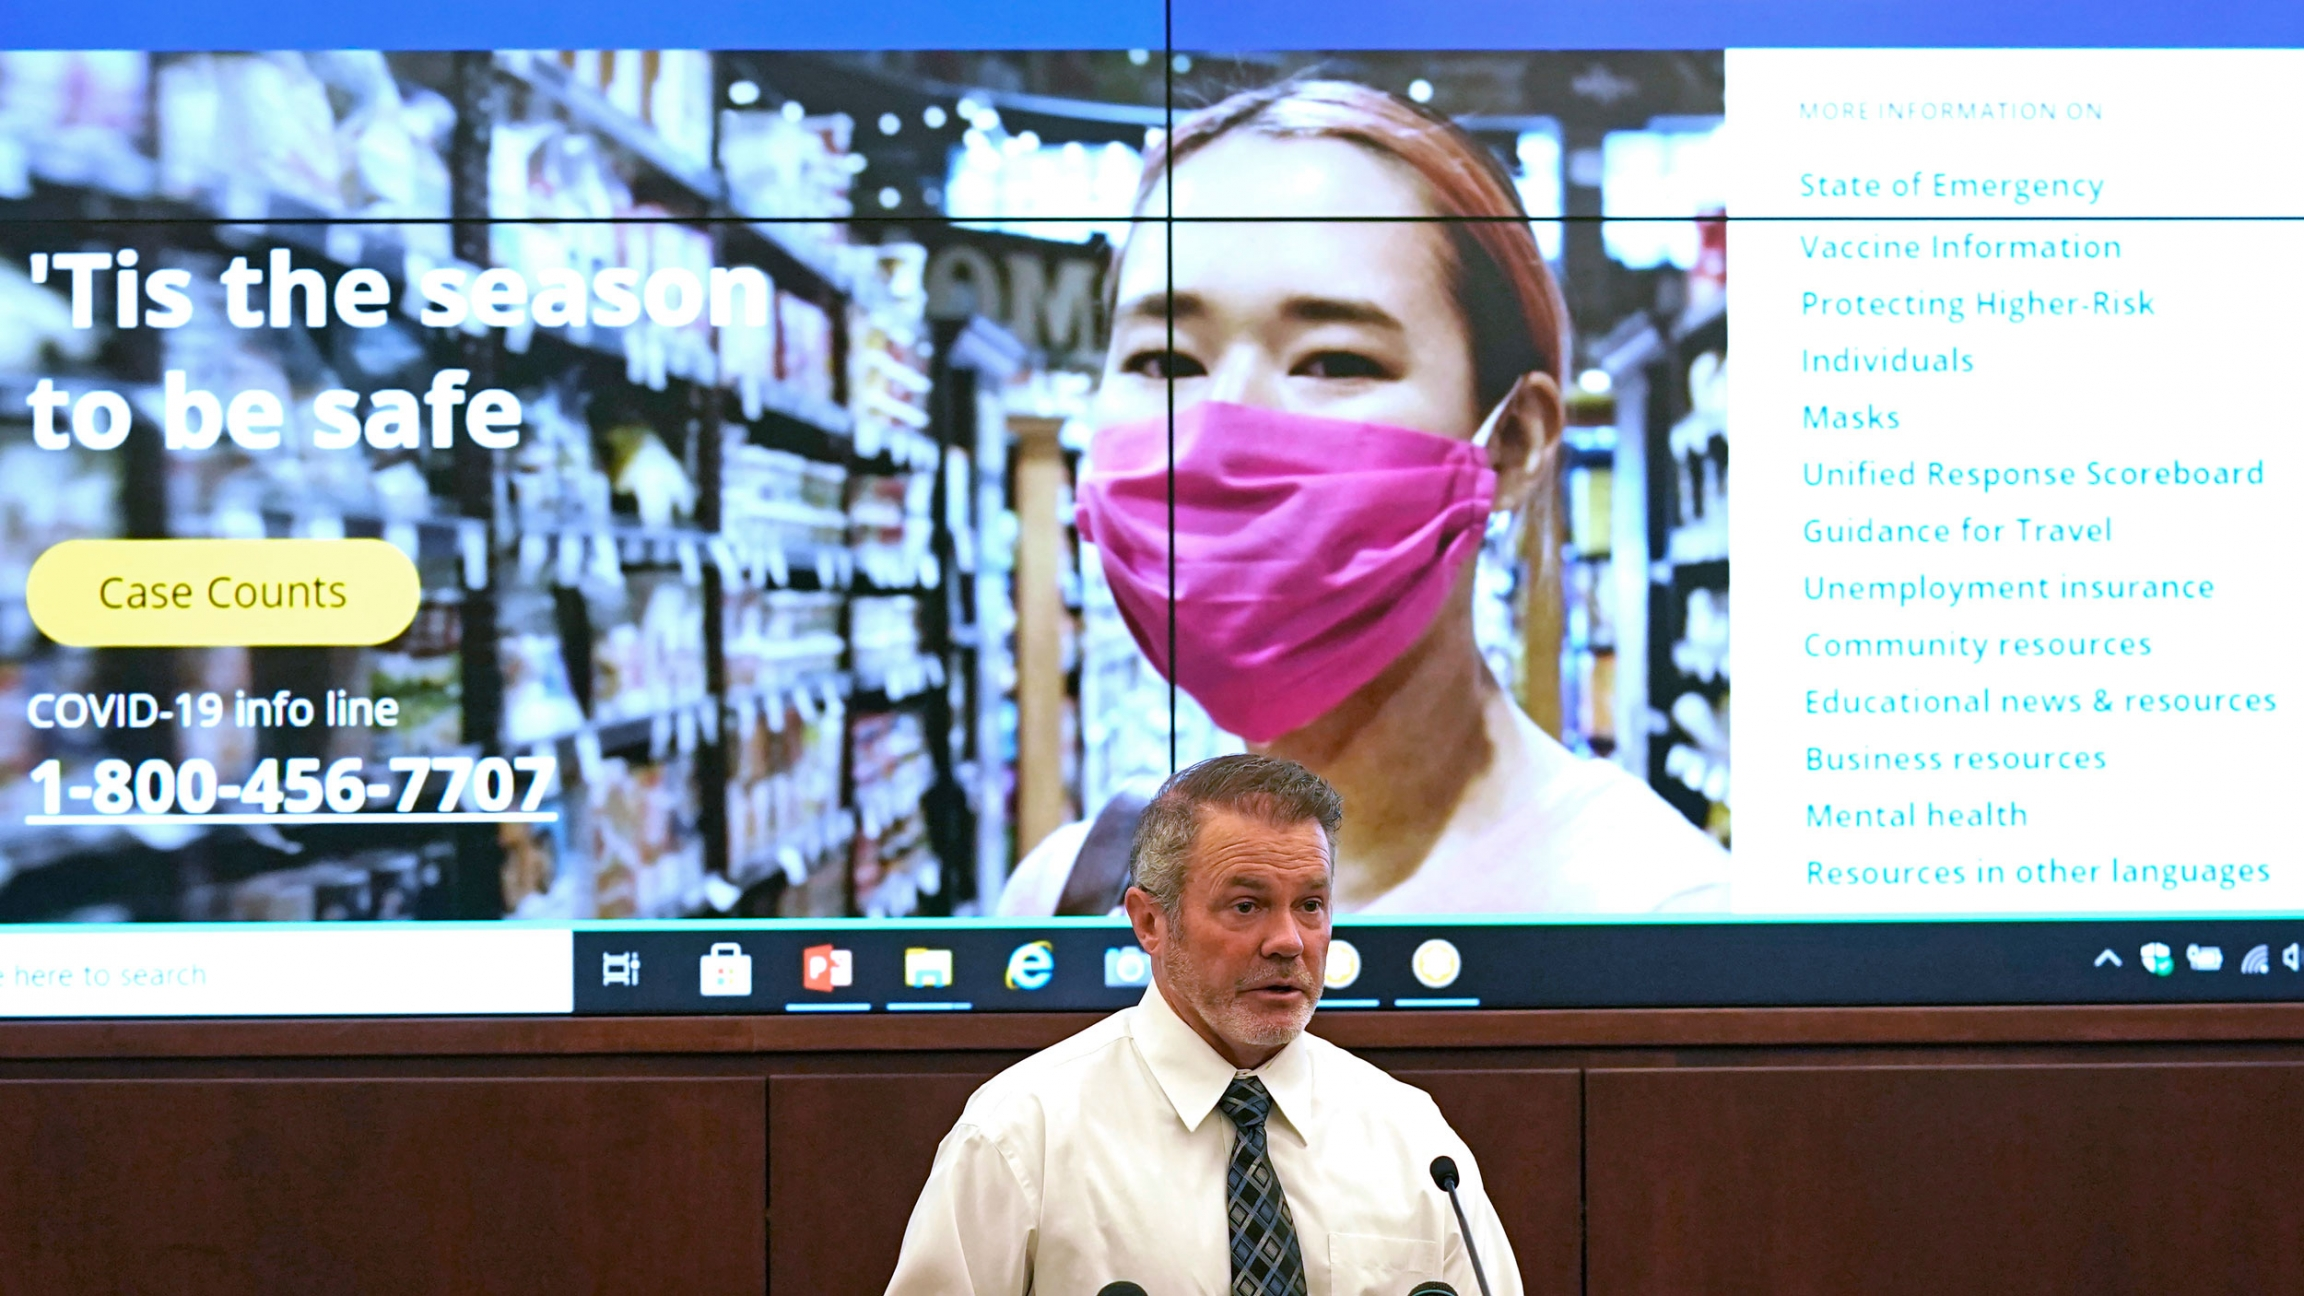 A man wearing a white shirt and gray tie is shown speaking a t podium with a screen behind him showing promotional material on coronavirus safety.